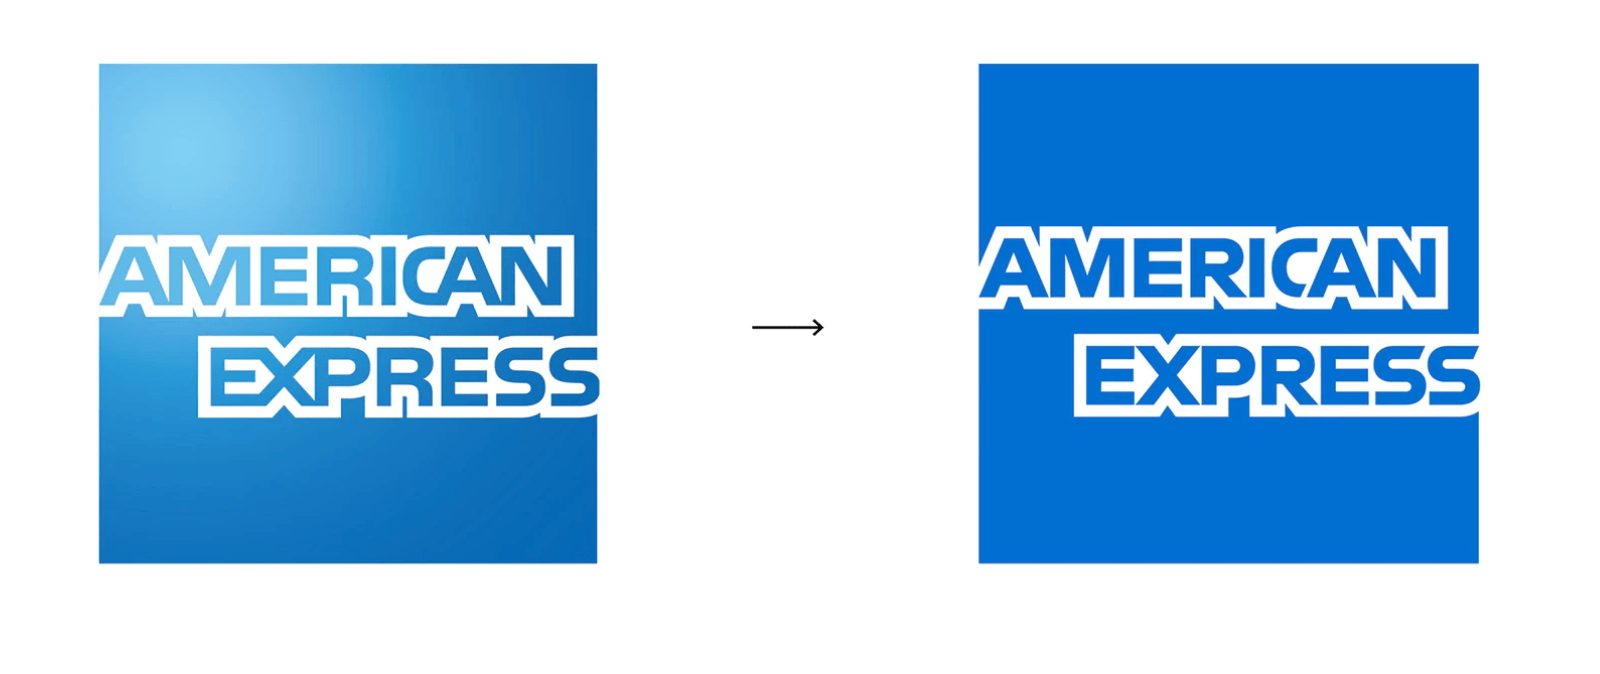 American Express new logo